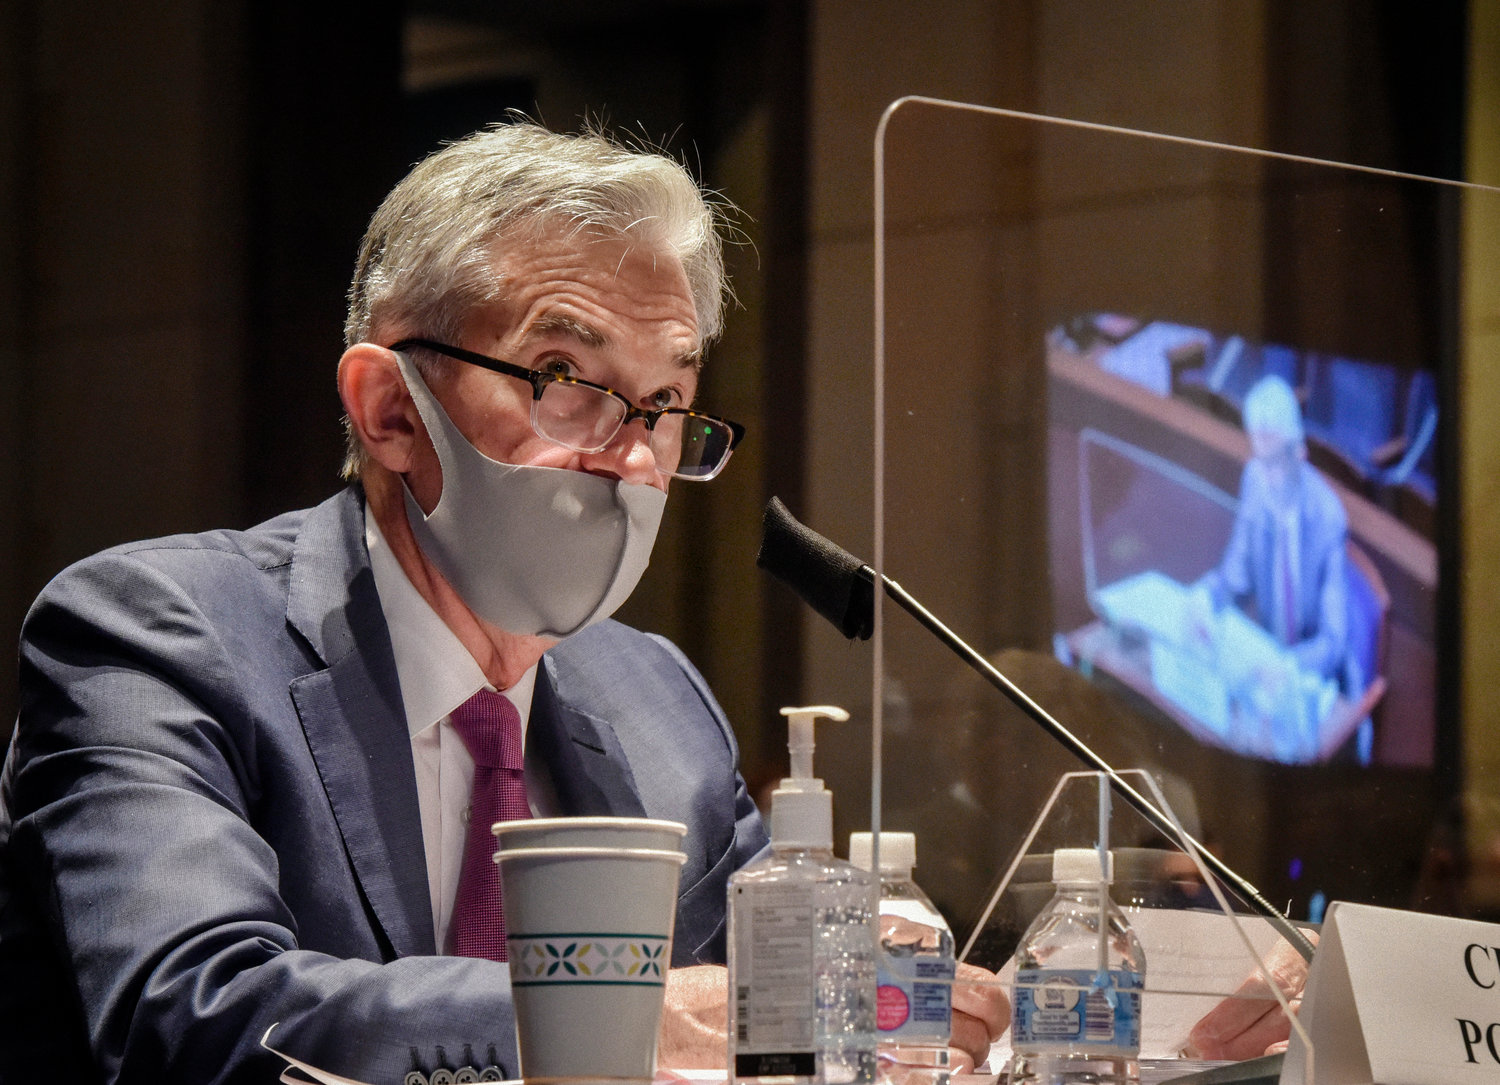 WASHINGTON, DC - June 30: .Fed Chairman Jerome Powell is reflected in the sneeze guard set up between himself and members of the House Committee on Financial Services hearing on Oversight of the Treasury Department and Fed Reserve Pandemic response in Washington, DC on June 30. .(Photo by Bill O'Leary/The Washington Post-POOL)